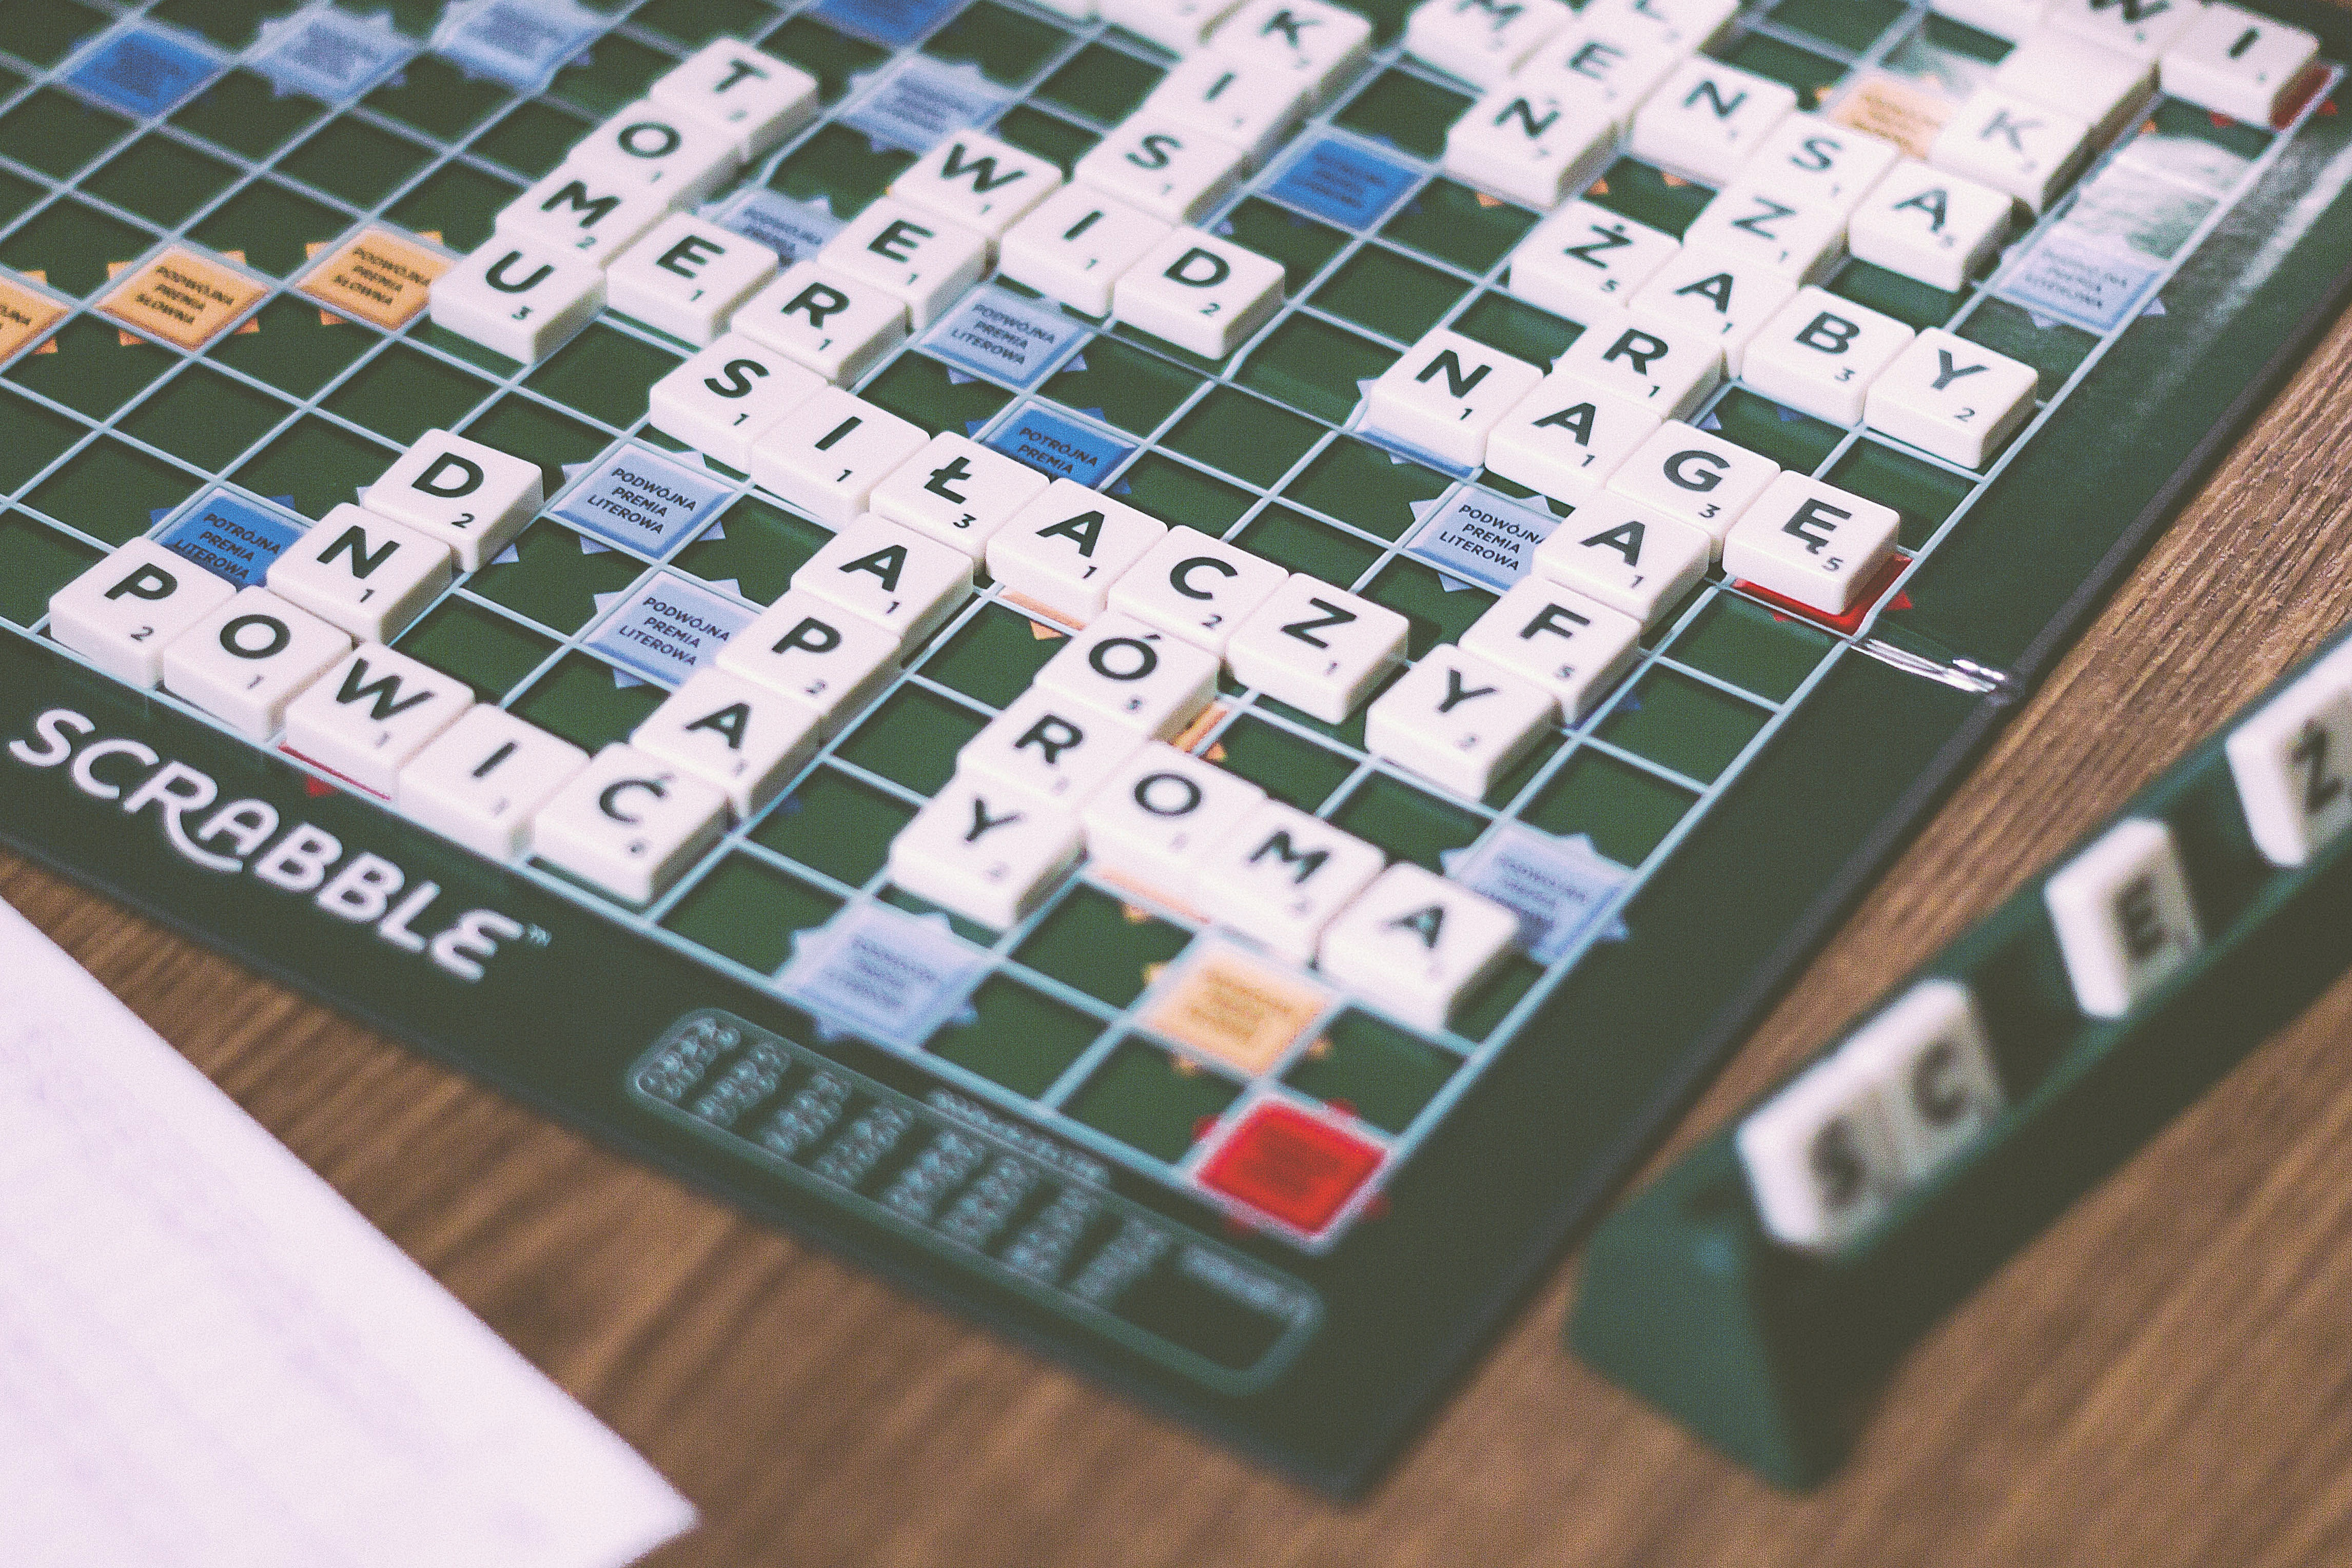 Board games build effective communication skills amongst teams